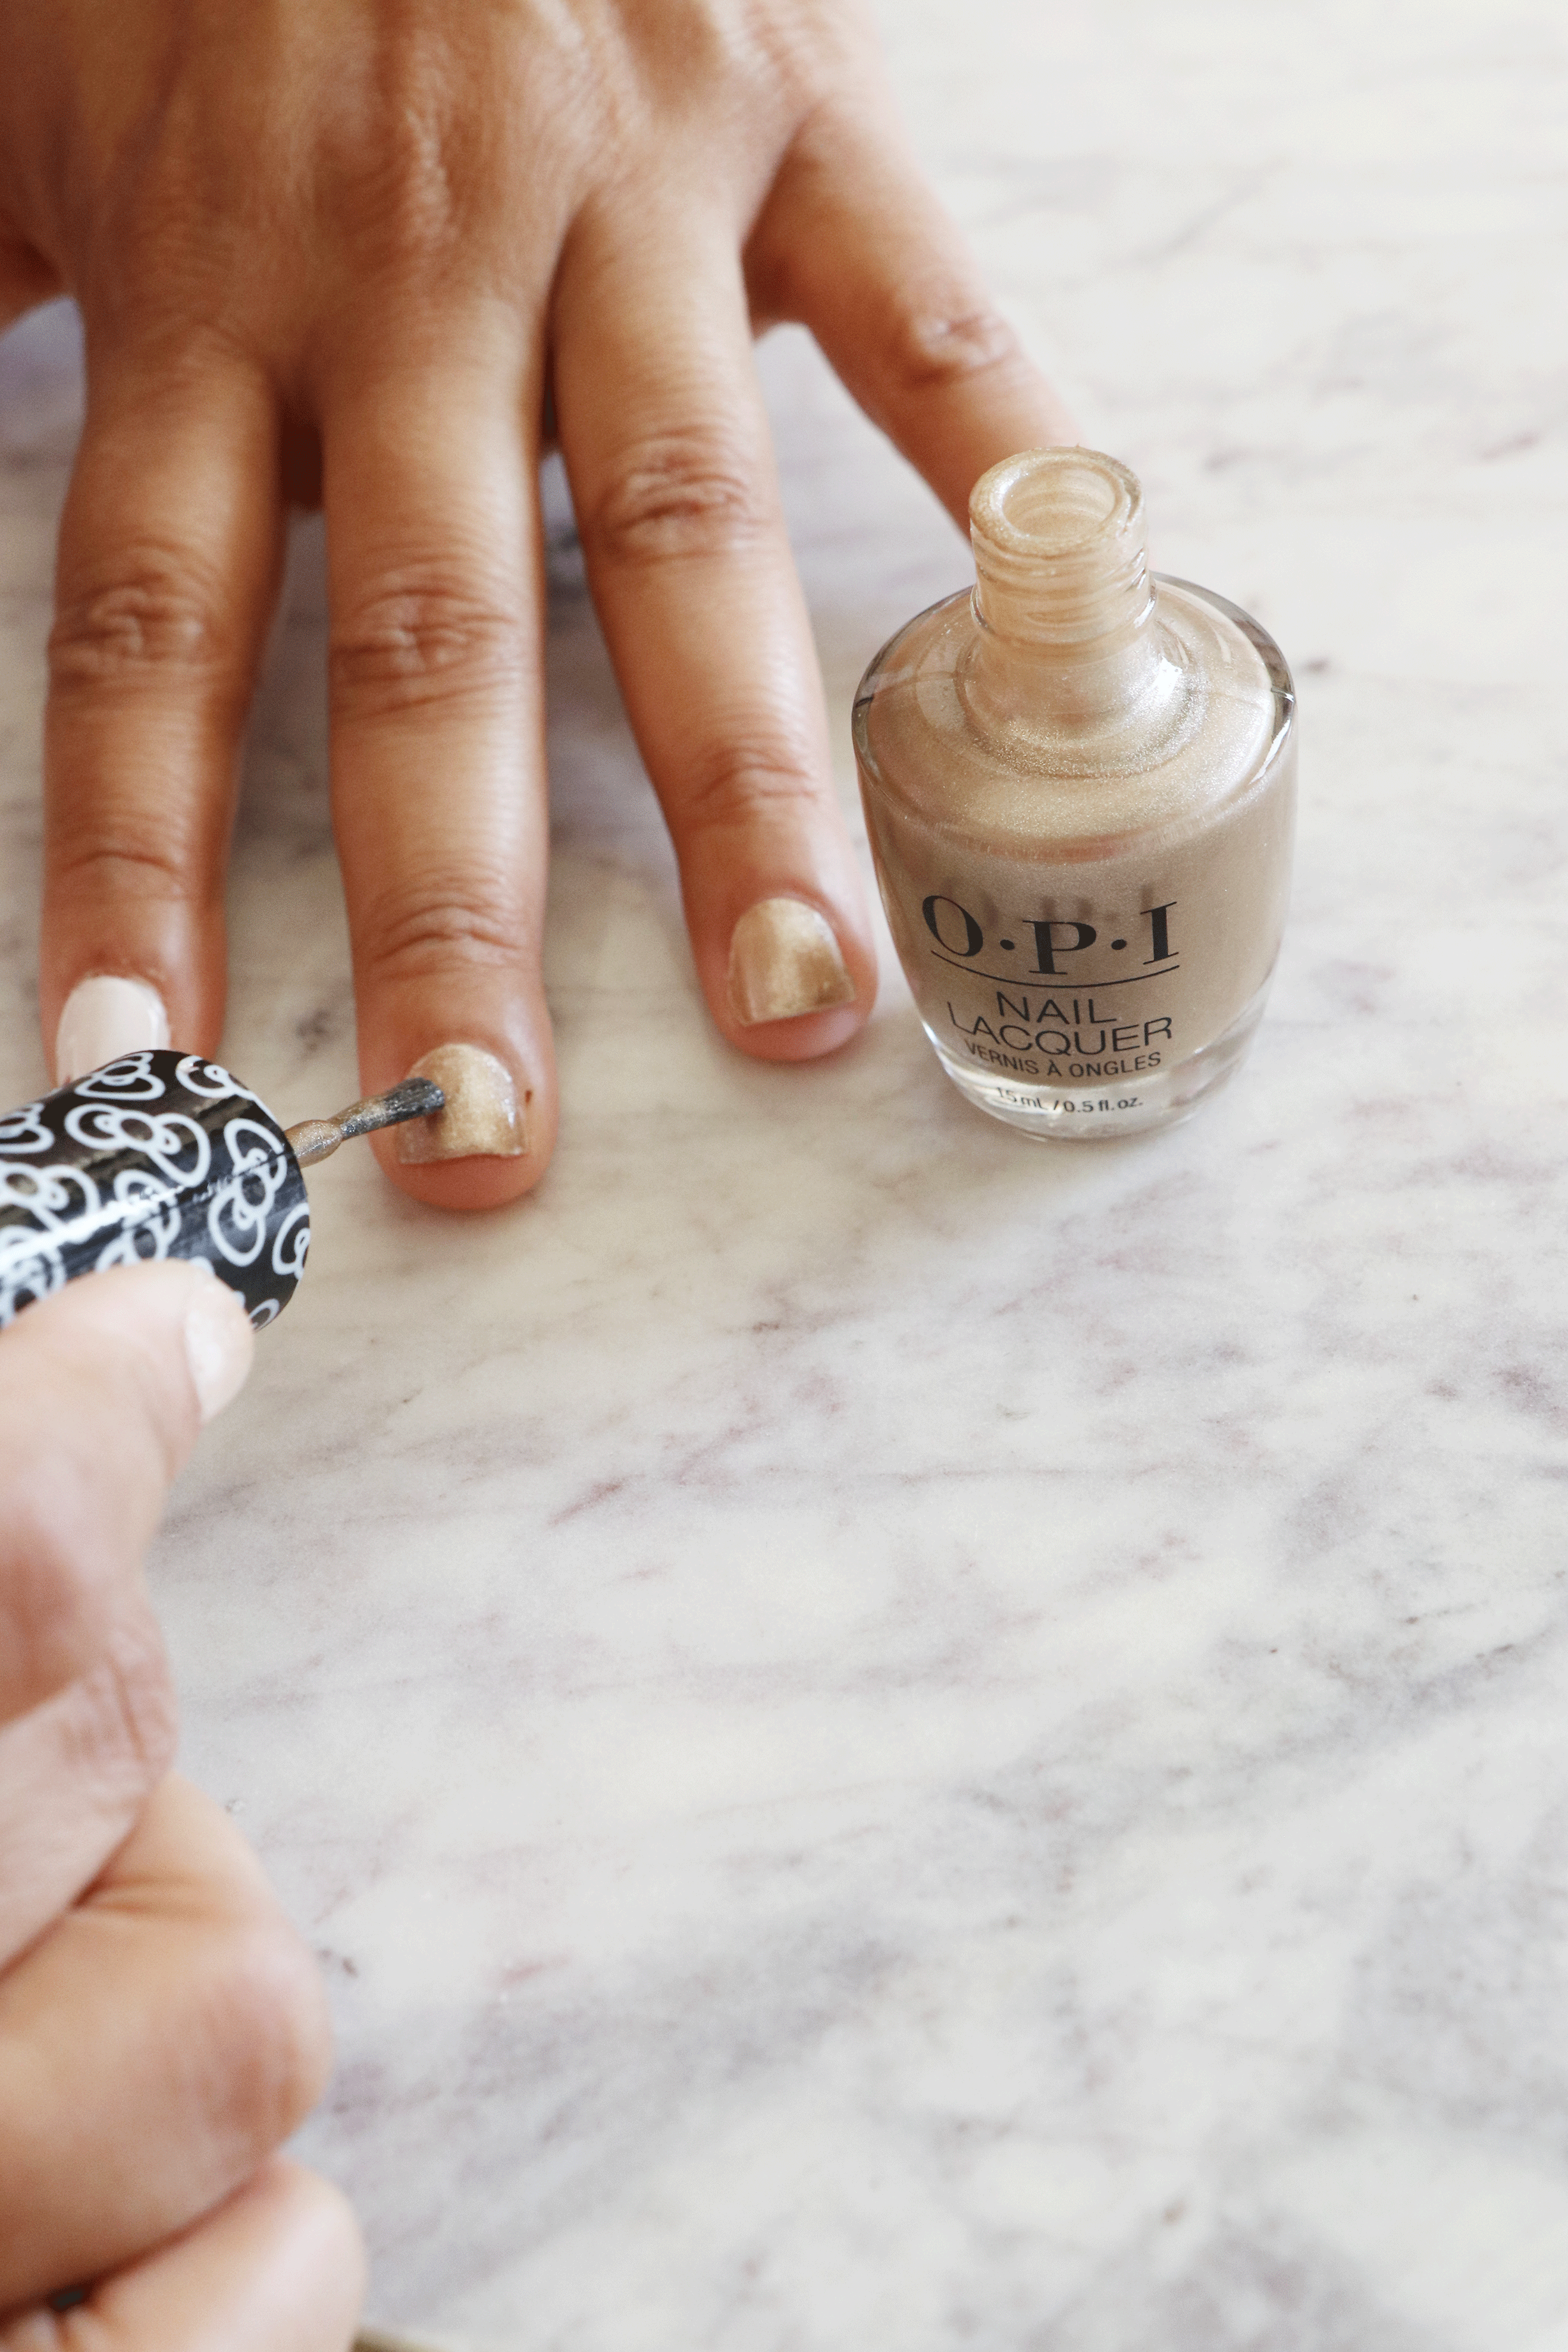 Summer is around the corner which means time for warm weather. Los Angeles blogger Makeup Life and Love is sharing her top warm weather finds HERE!